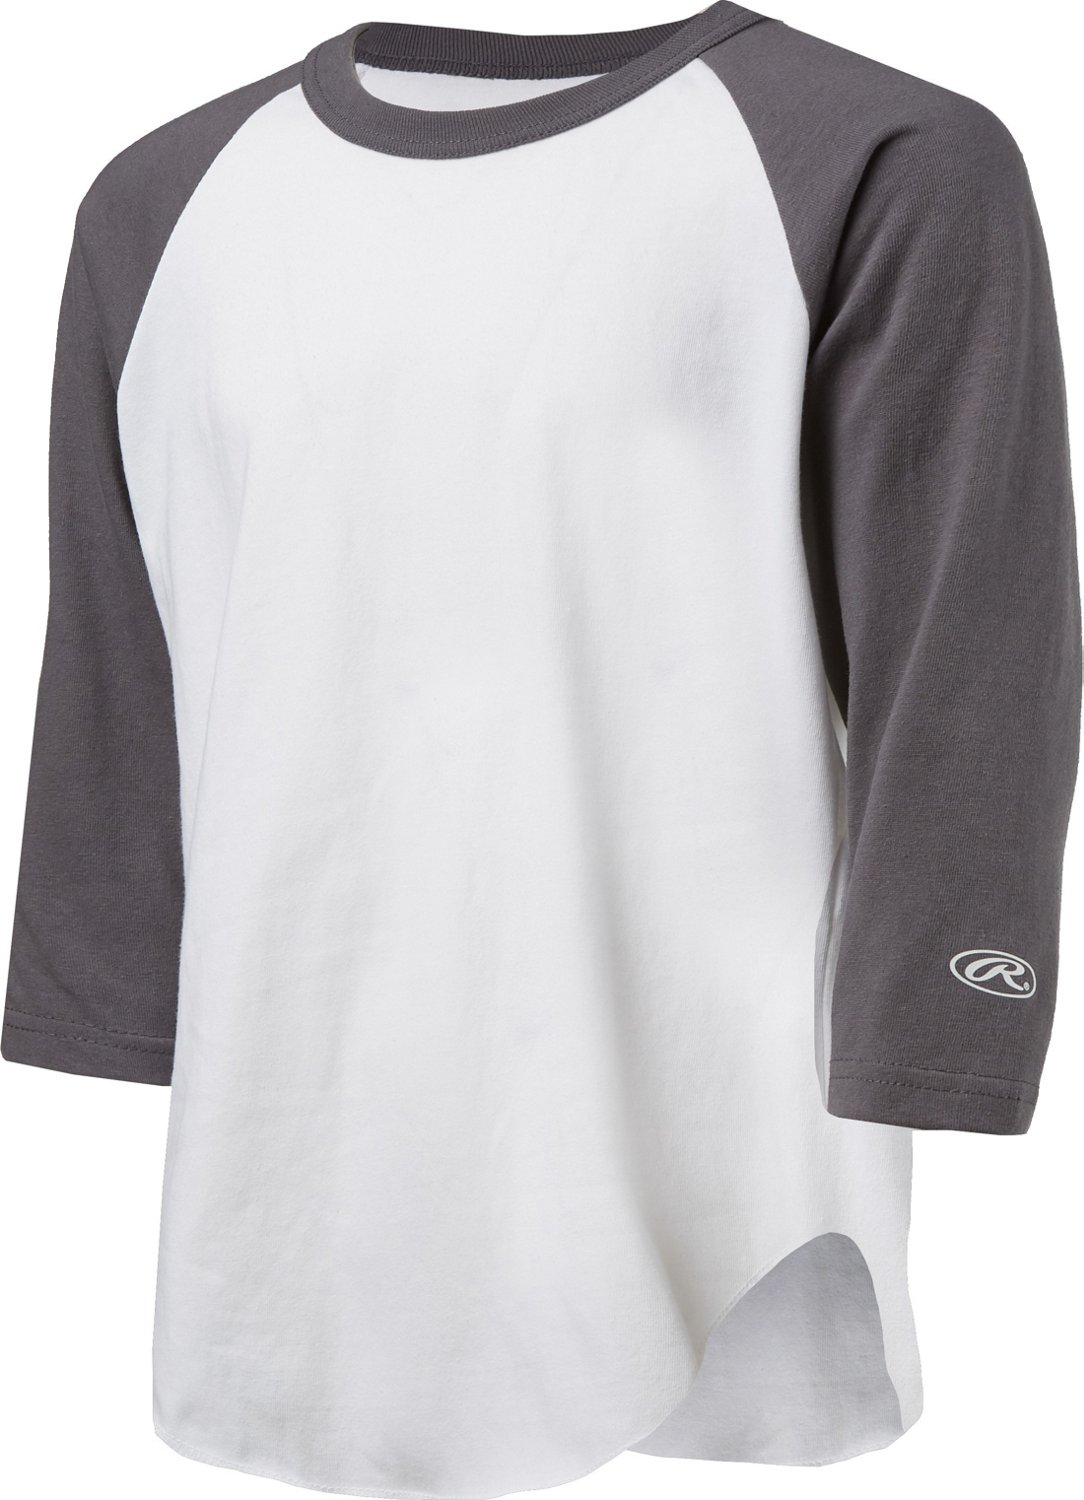 6ccbc8cb Display product reviews for Rawlings Men's 3/4 Sleeve T-shirt